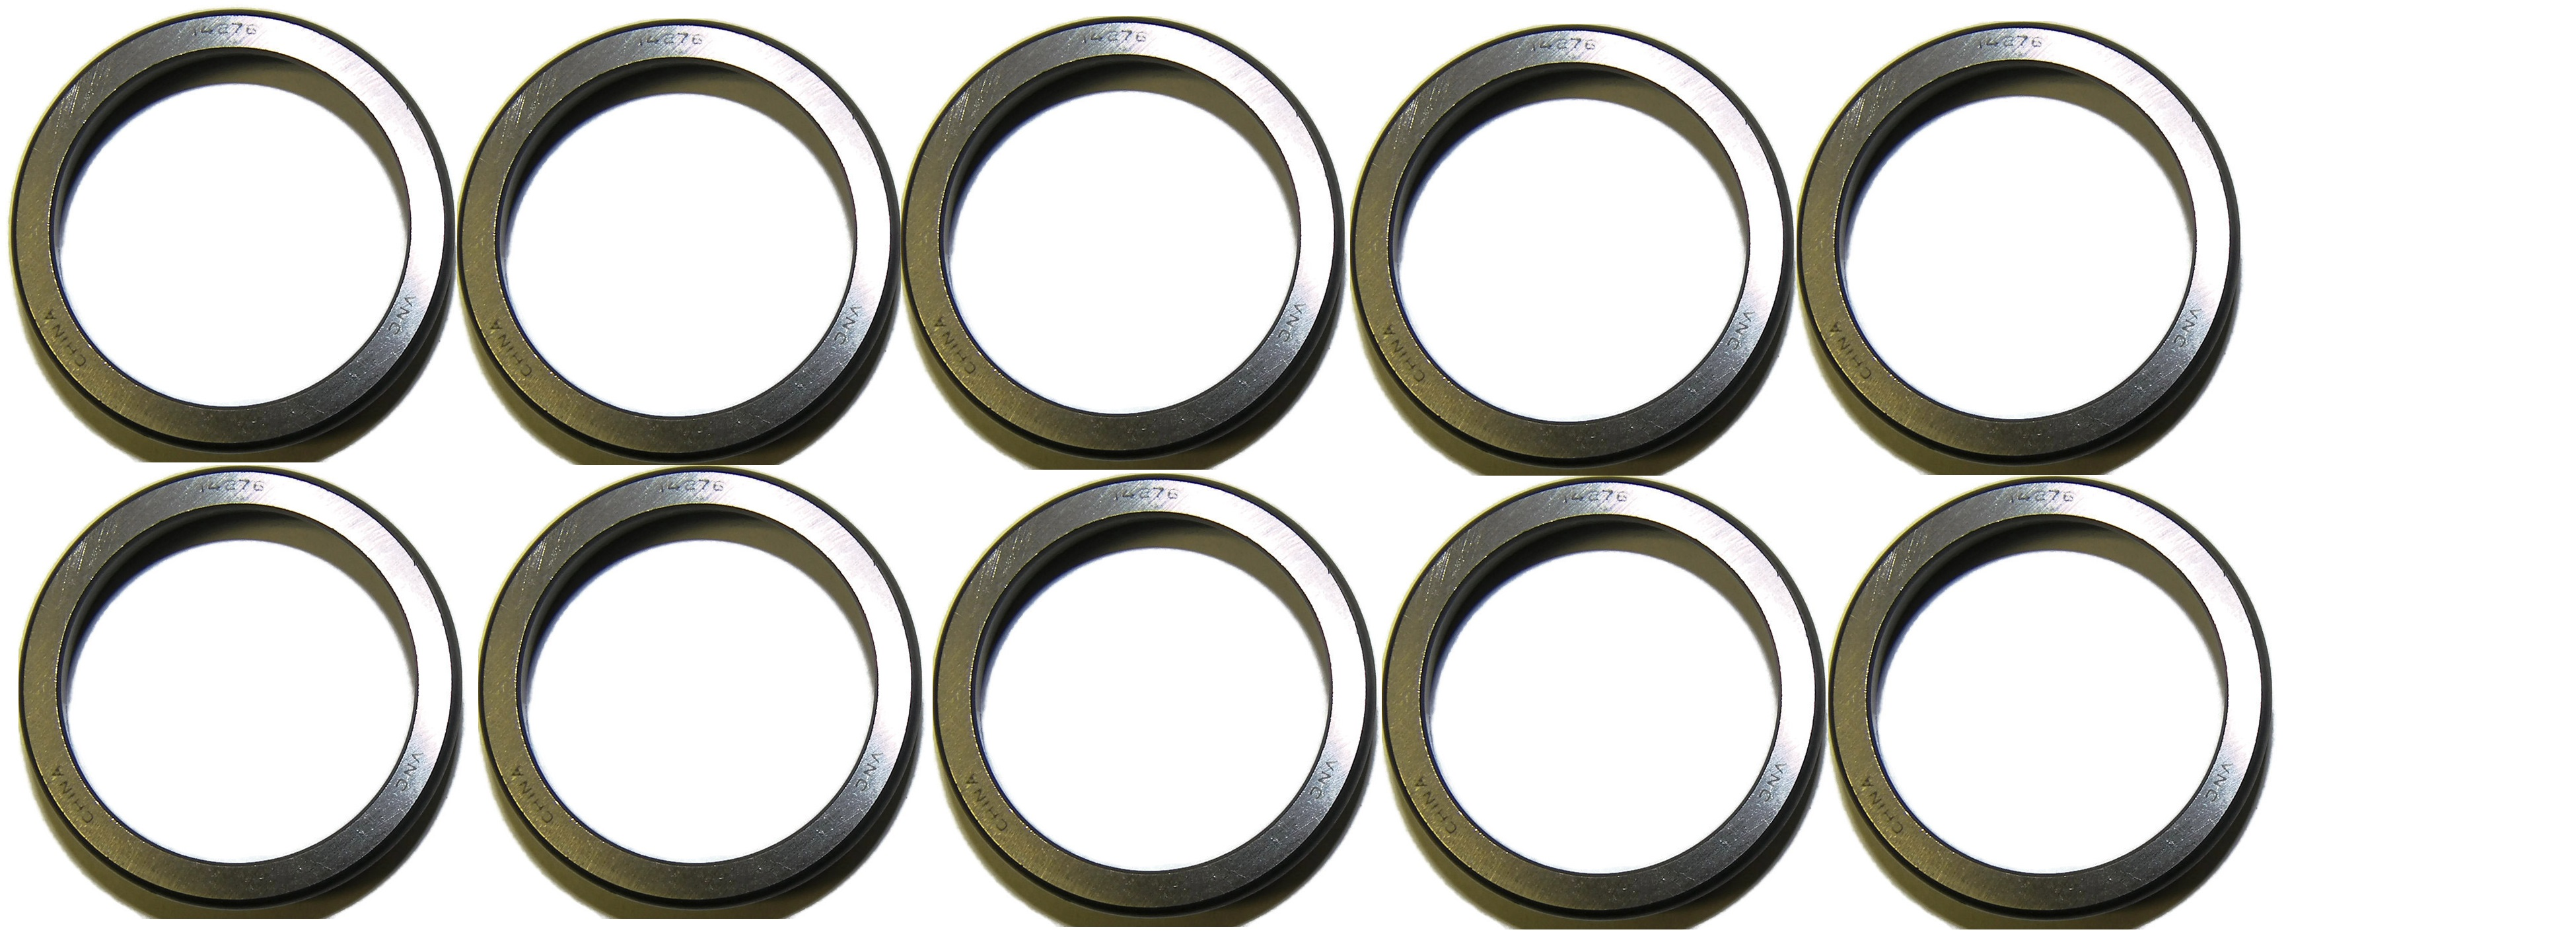 014-127012-10 AP Products Bearing Race 14276